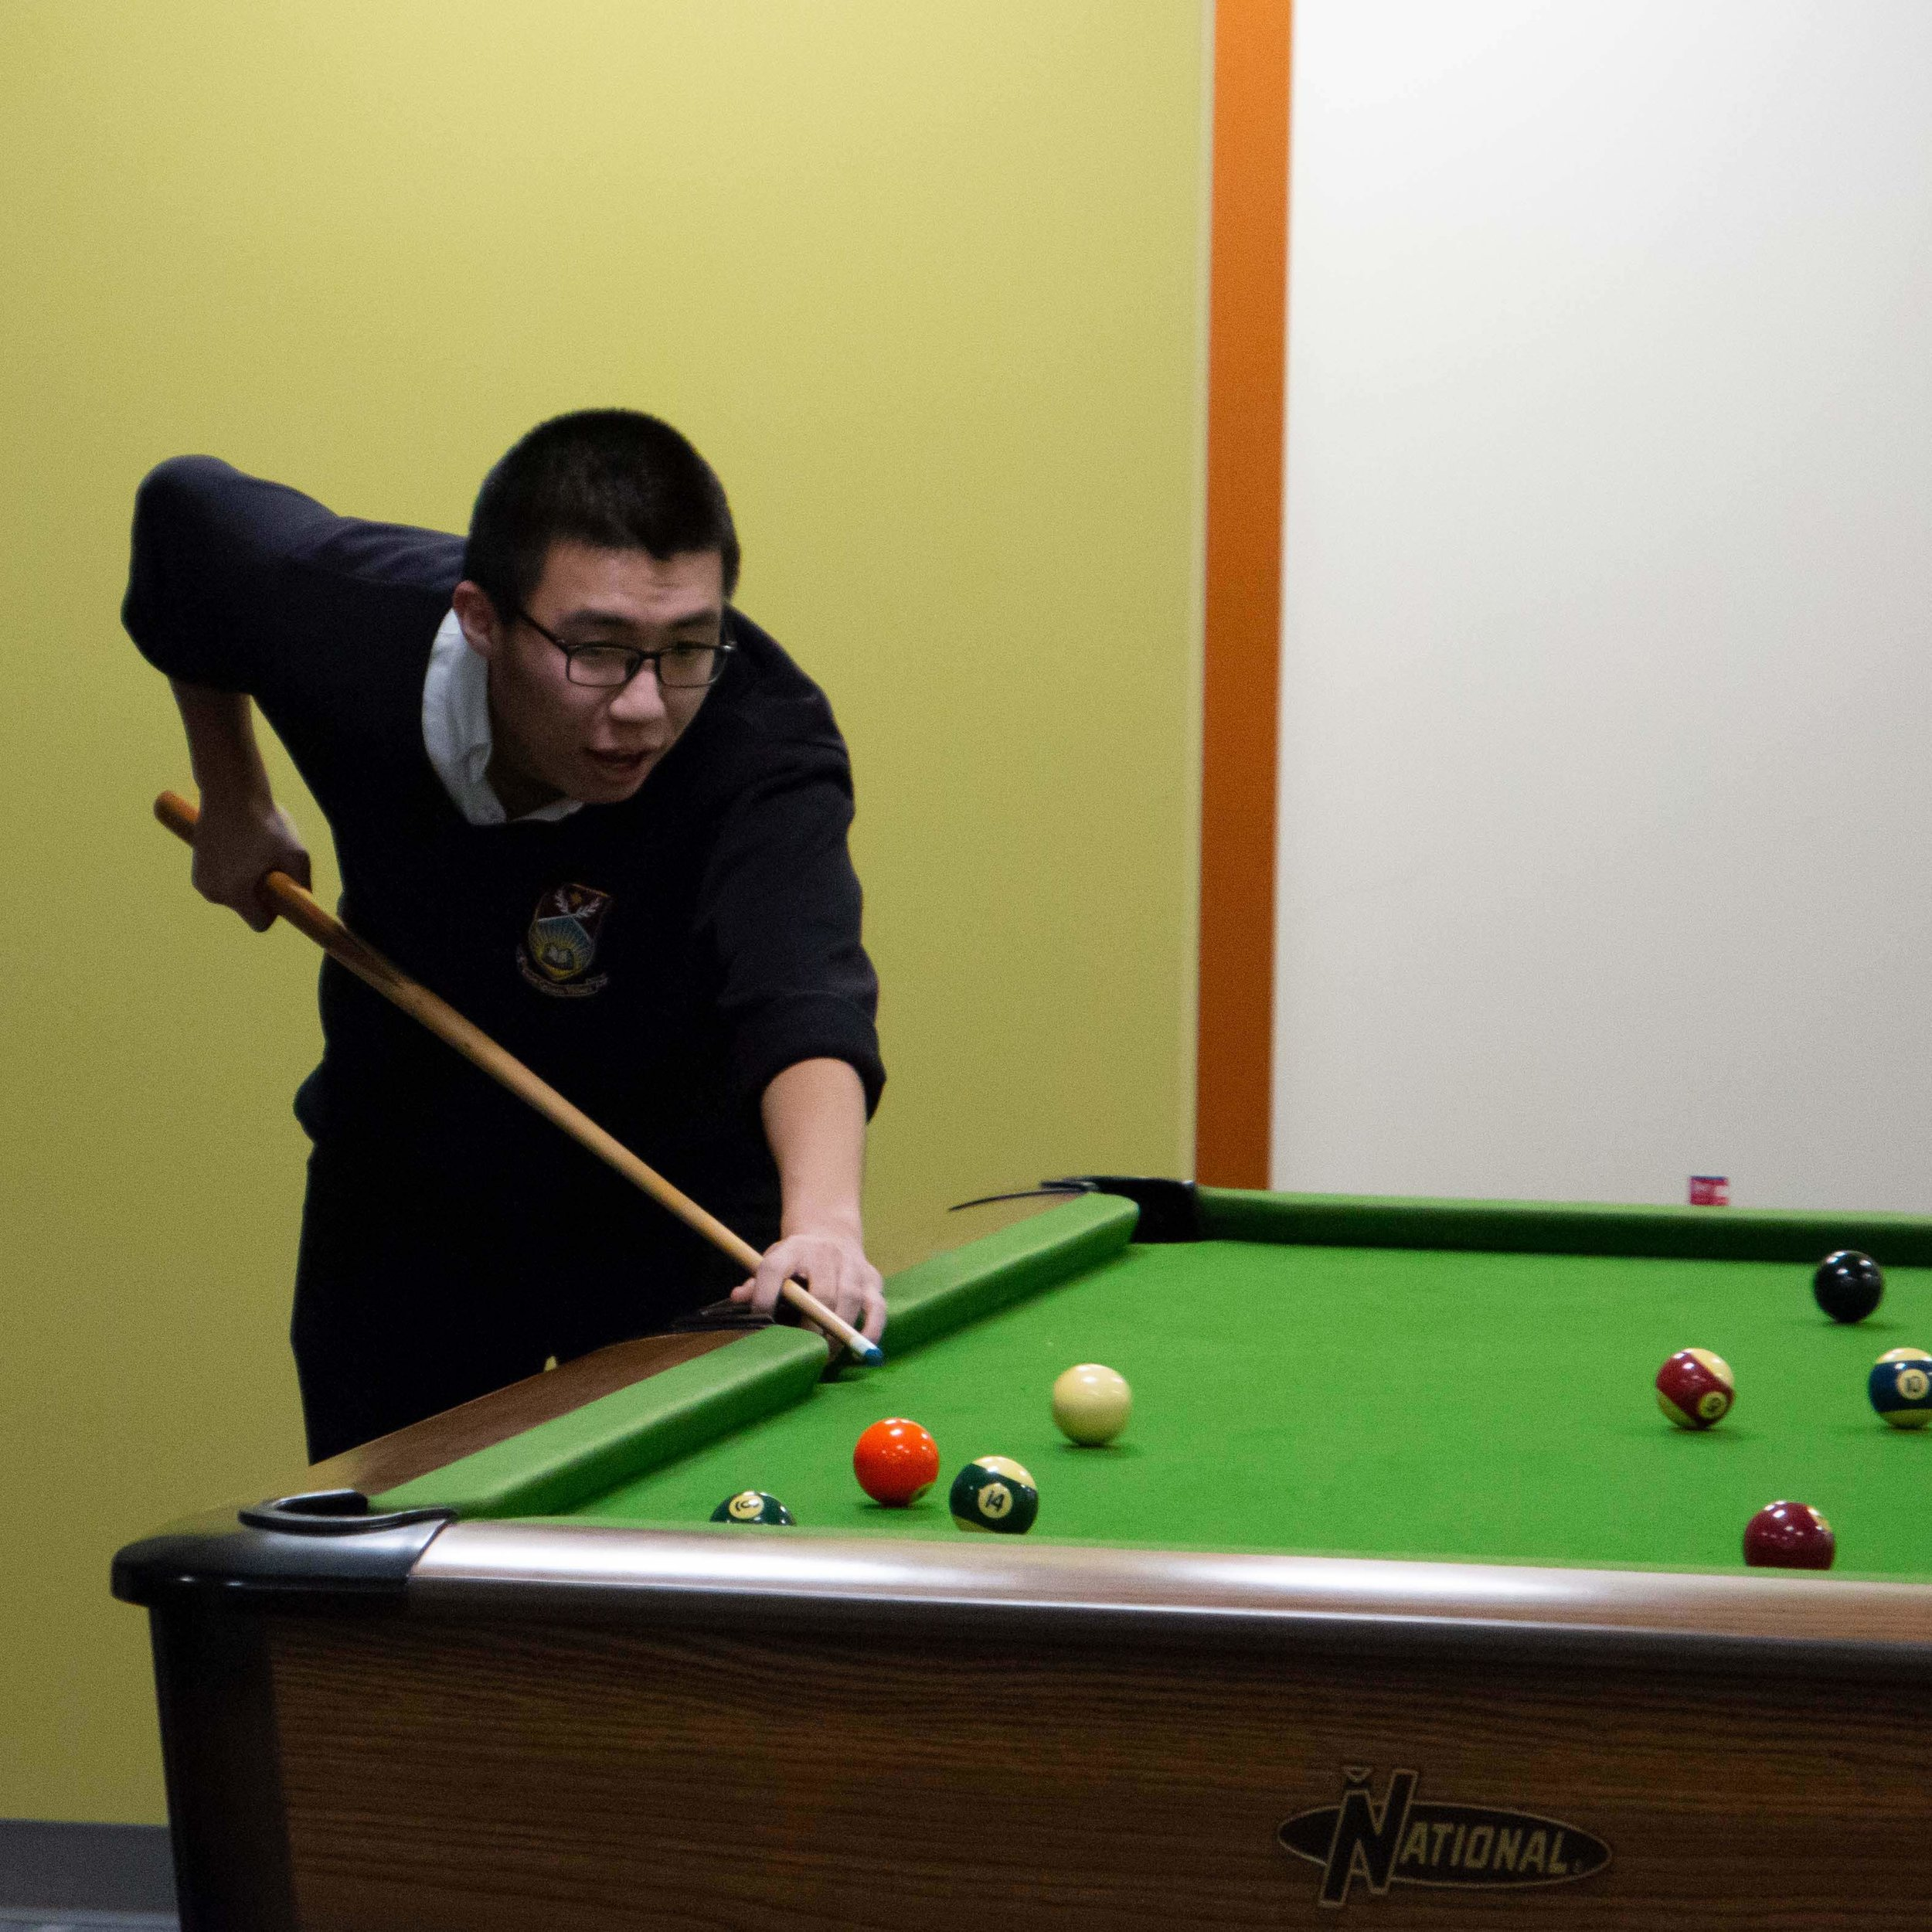 pool_table_square_MG_0392.jpg